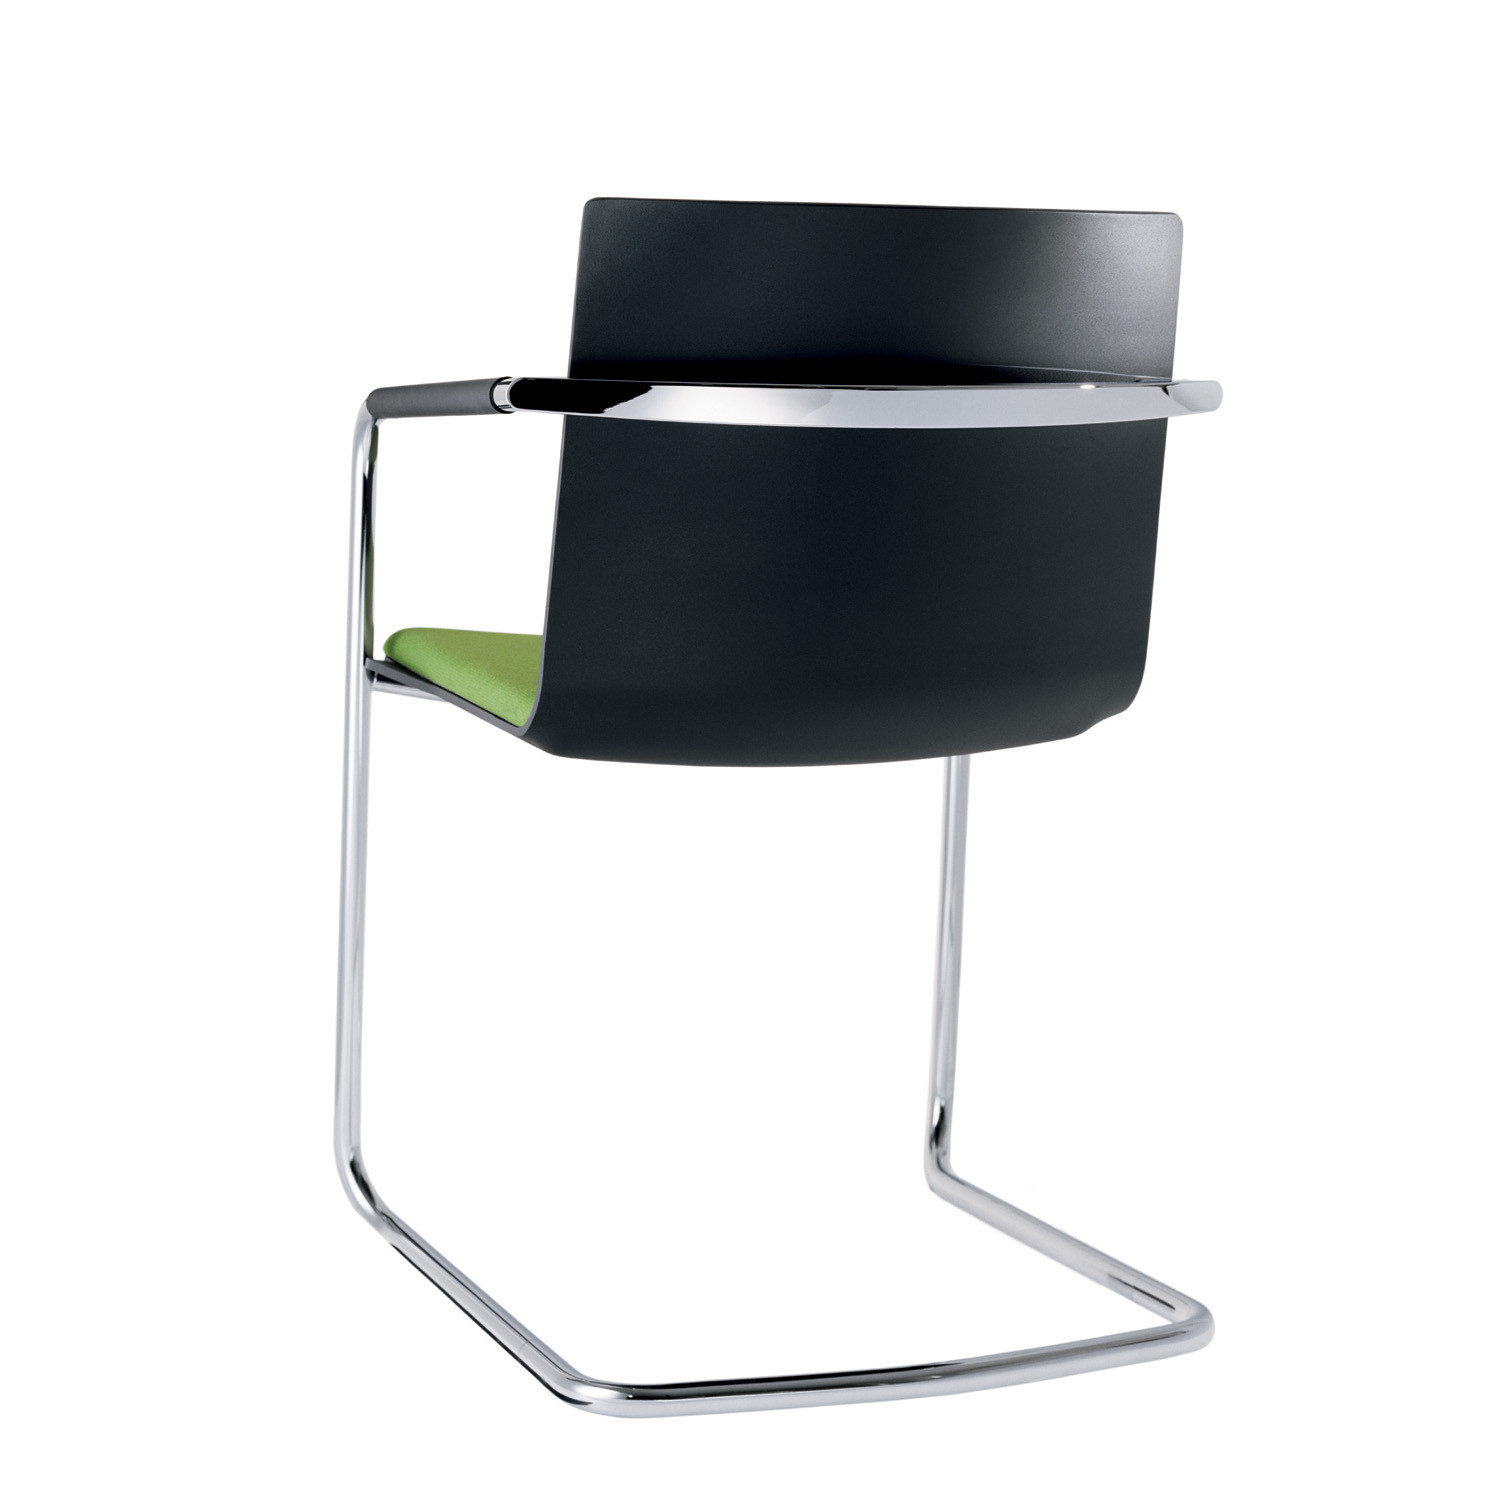 Neos Cantilever Chair back detail